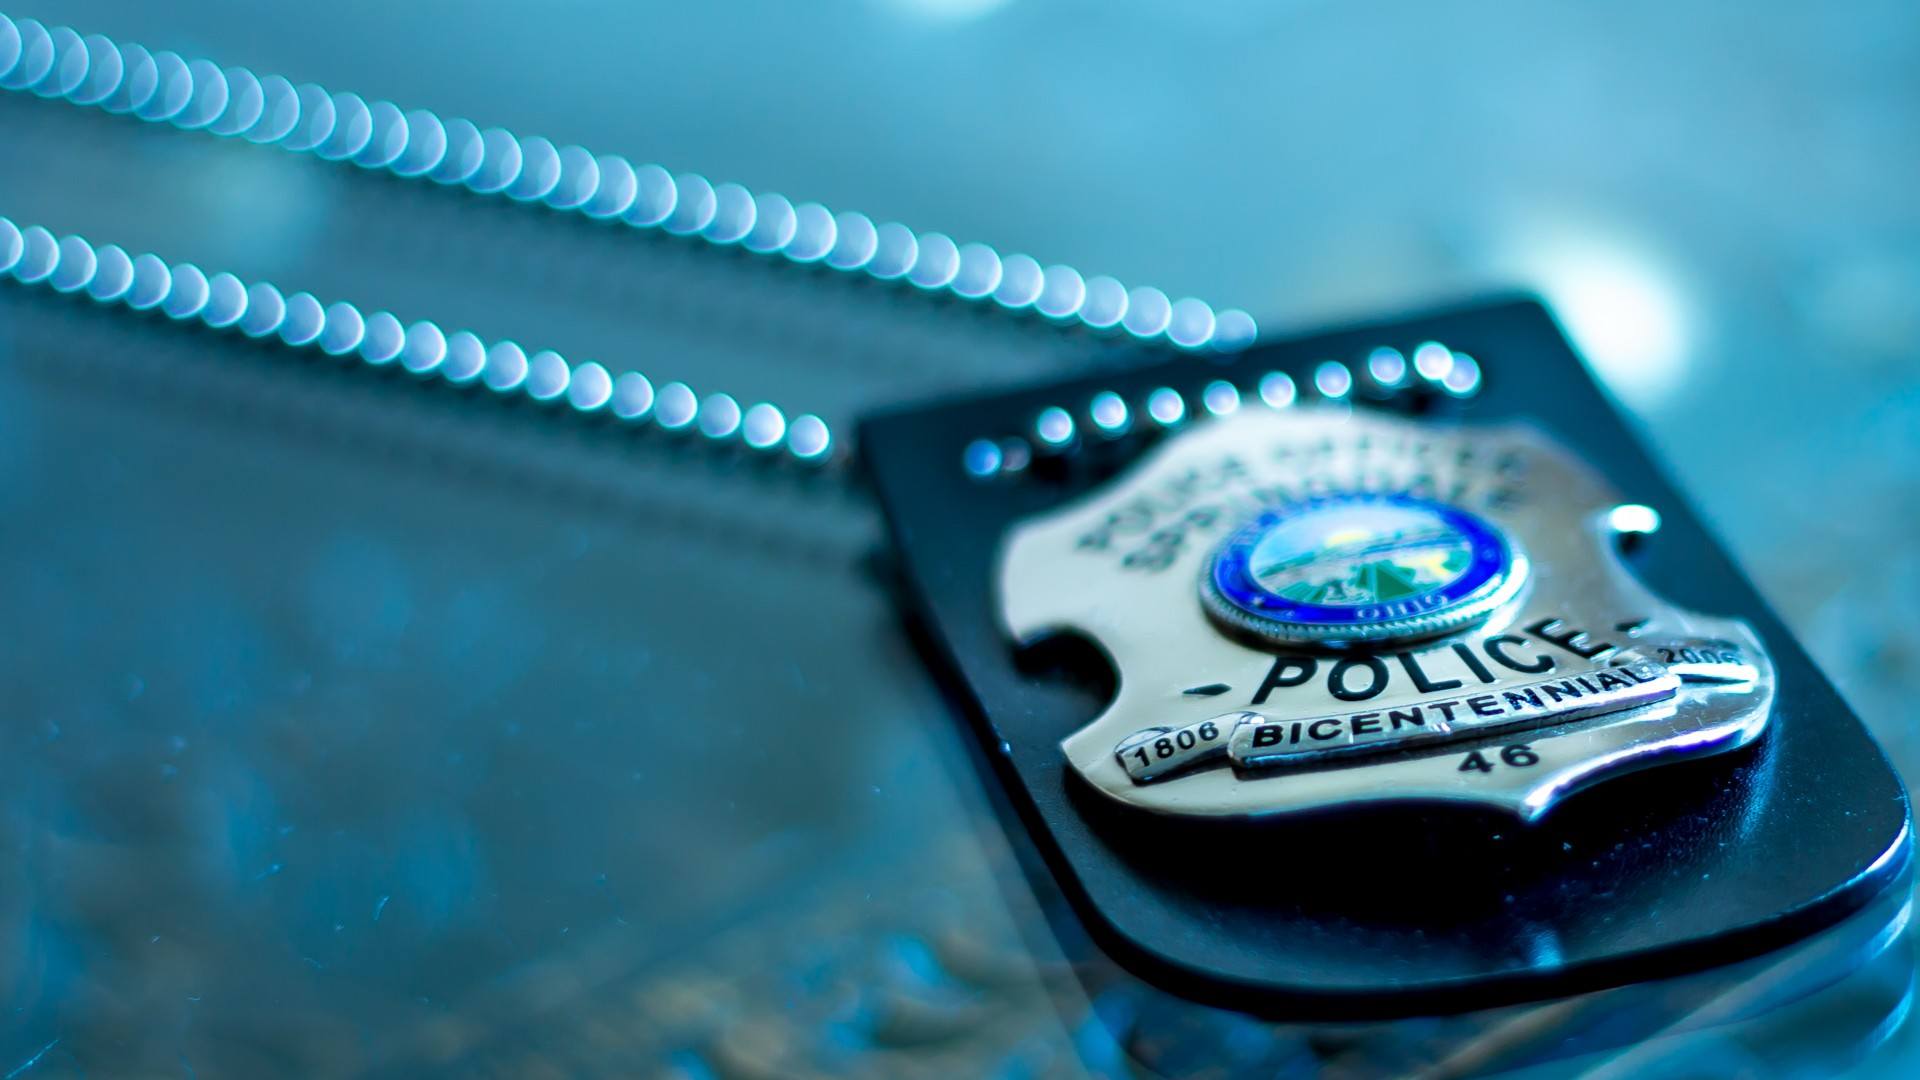 police badge text chain macro wallpaper background 1920x1080